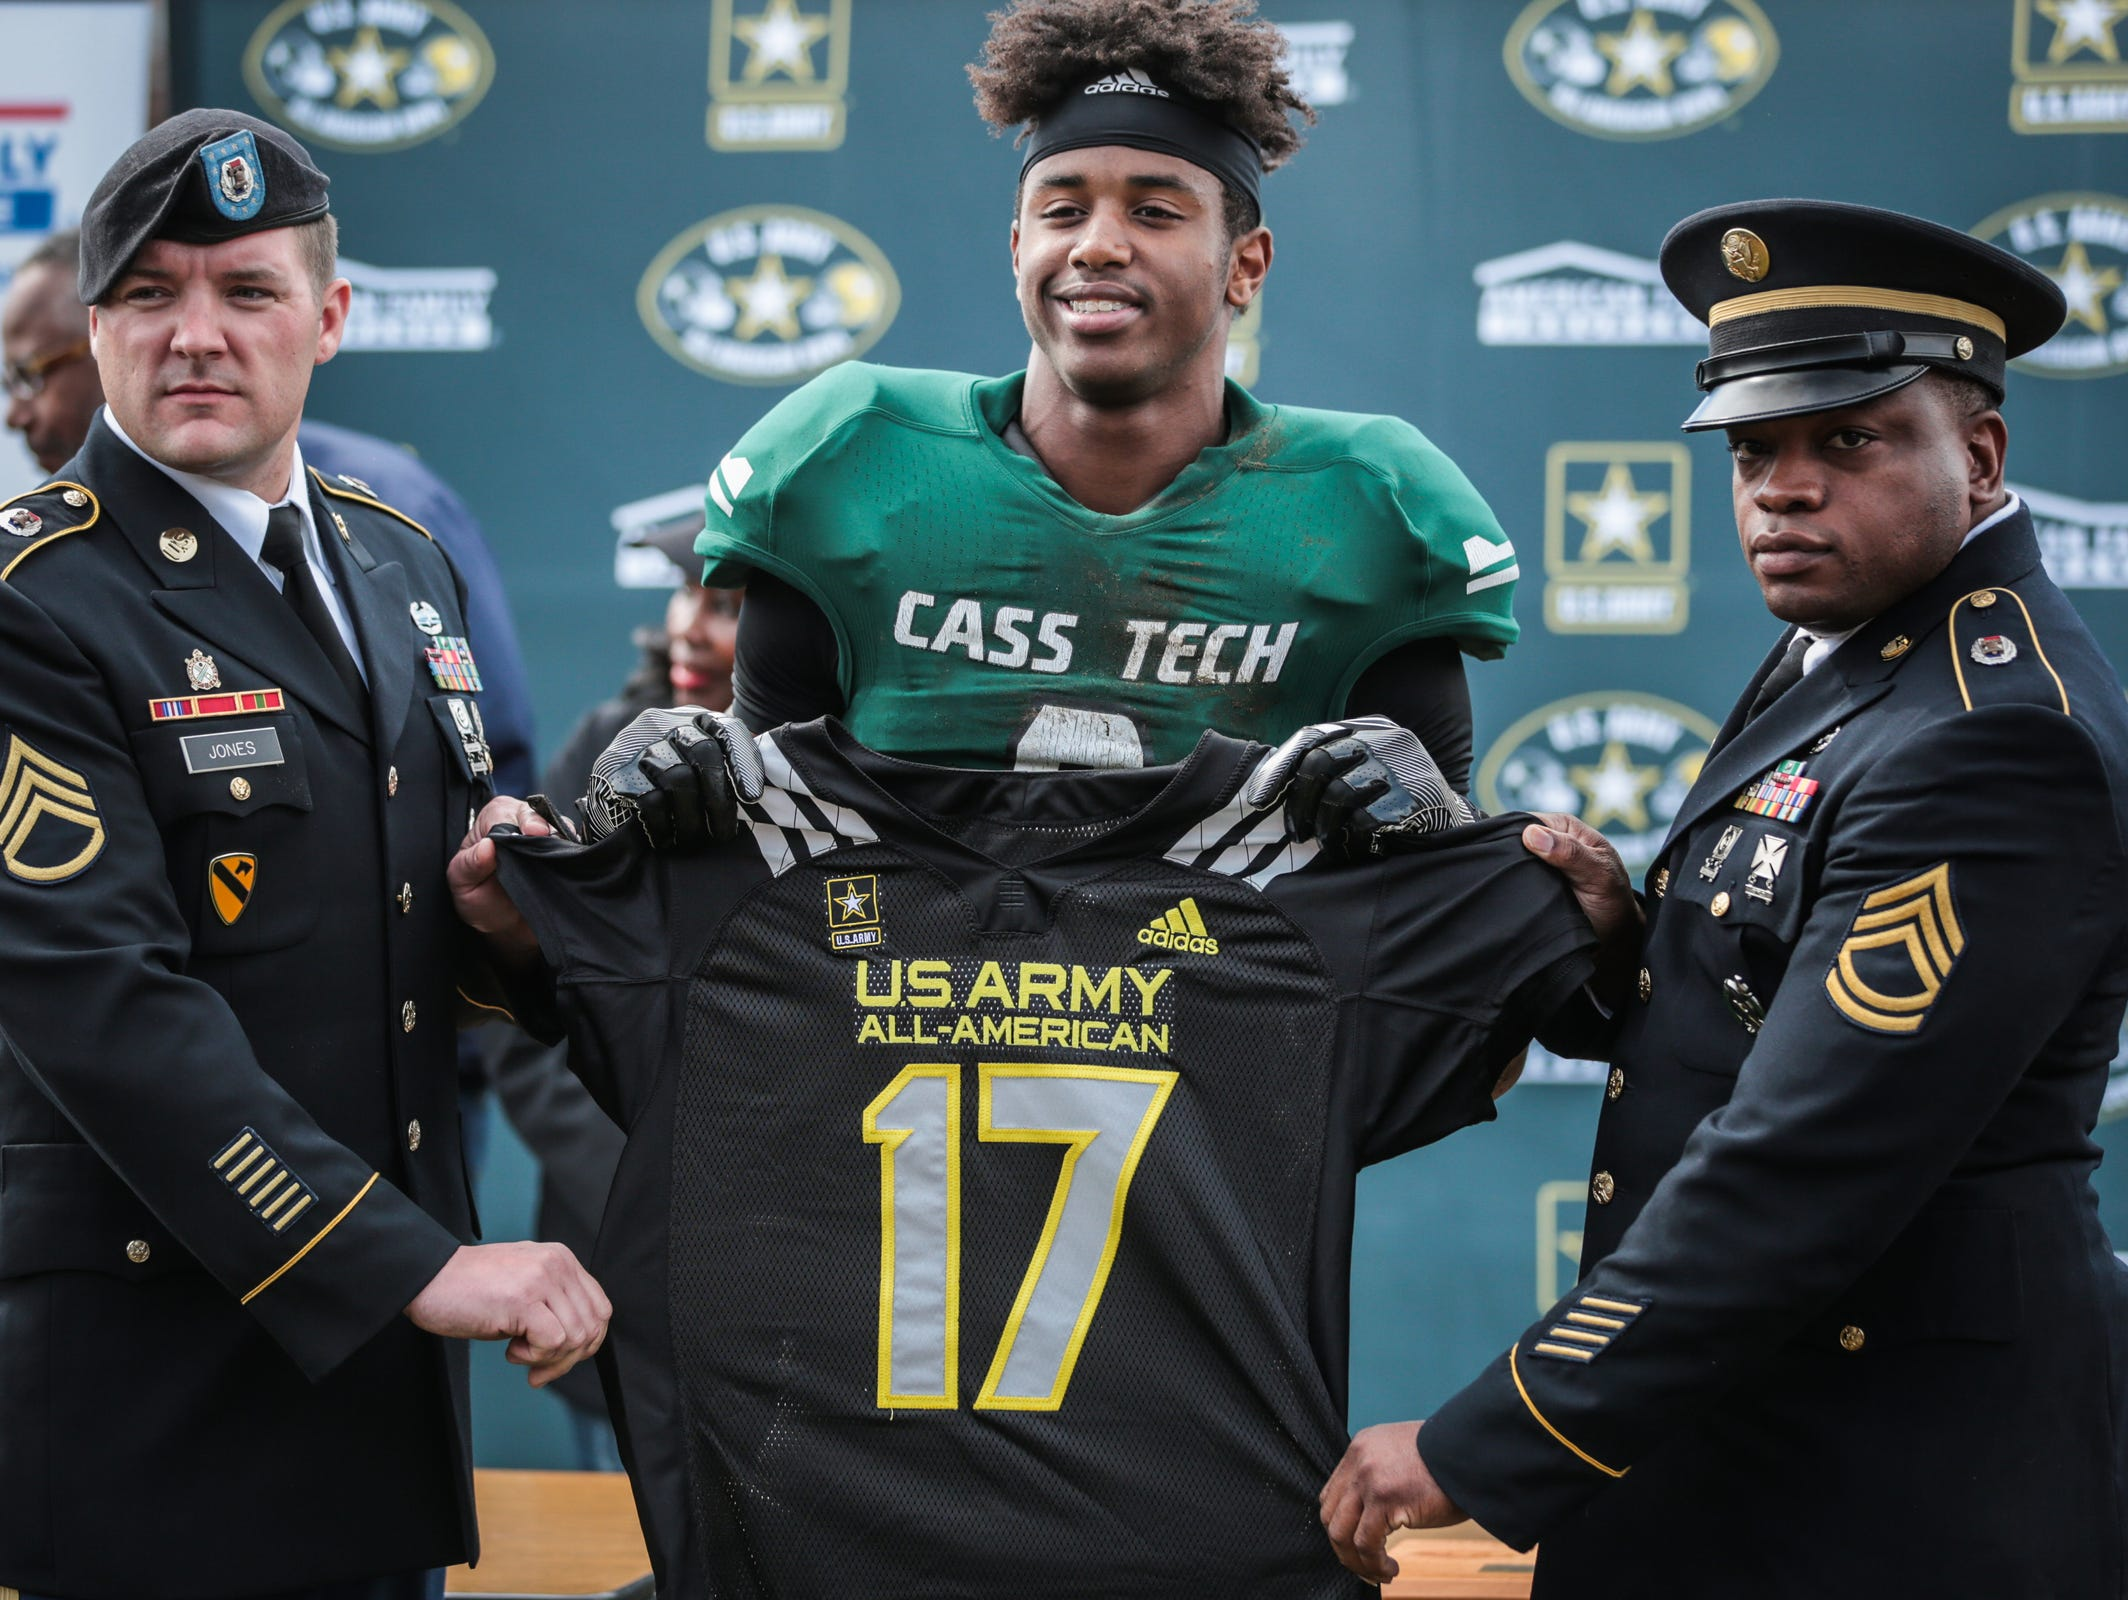 Detroit Cass Tech's Donovan Peoples-Jones is honored as a 2017 U.S. Army All-America during halftime against Detroit King on Saturday, October 1, 2016, in Detroit.